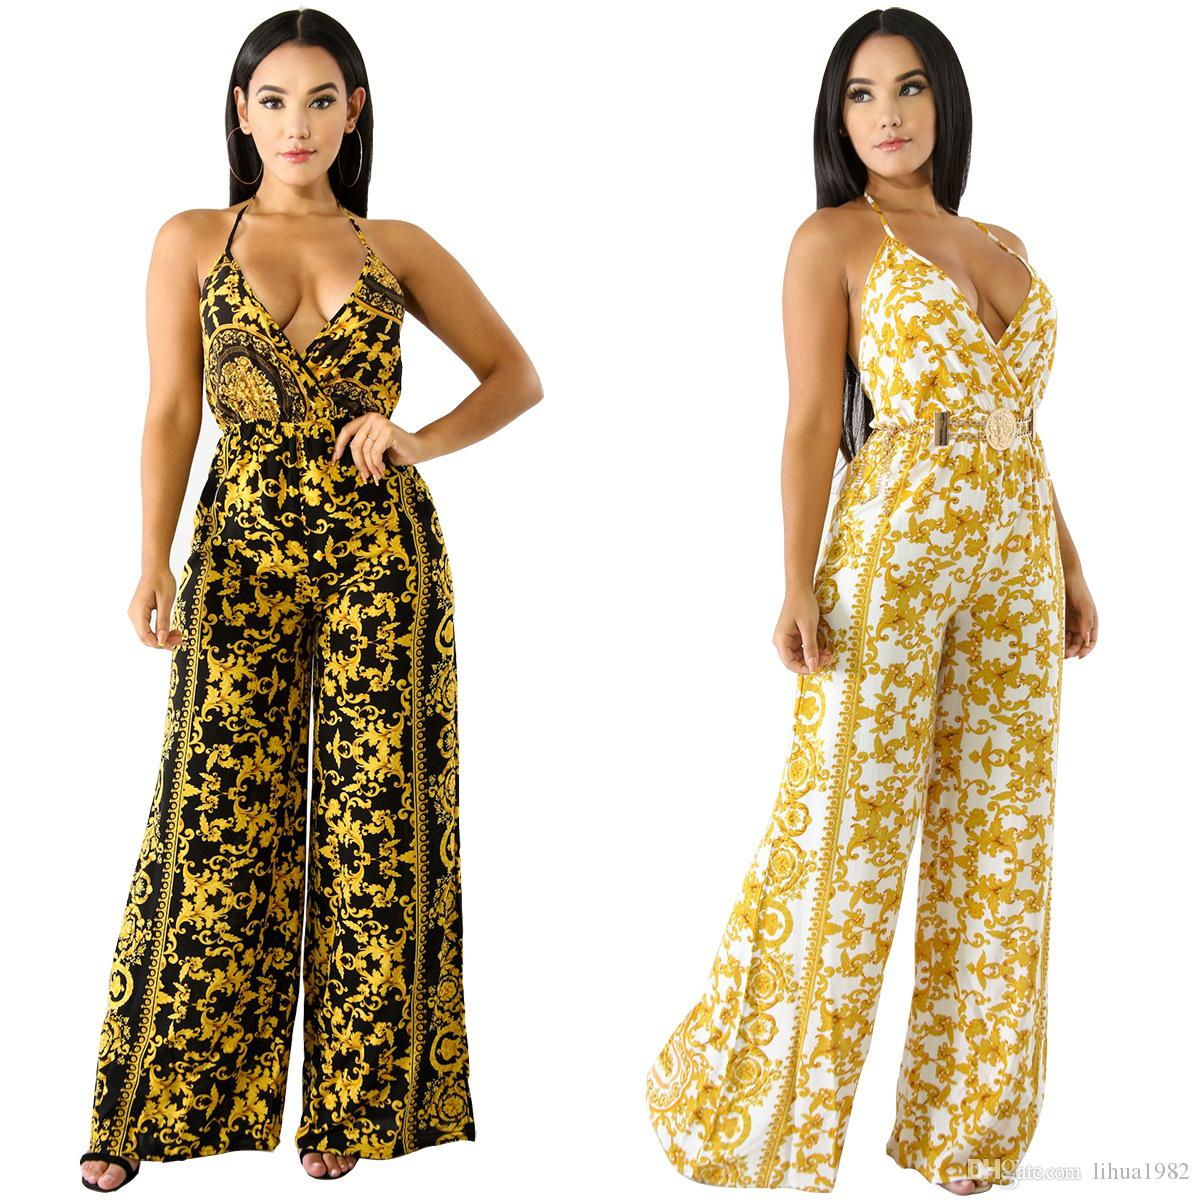 7612958a353b 2019 Sexy Spaghetti Strap Print Women Jumpsuit Backless Halter Top Long  Loose Pants Ladies Romper From Lihua1982